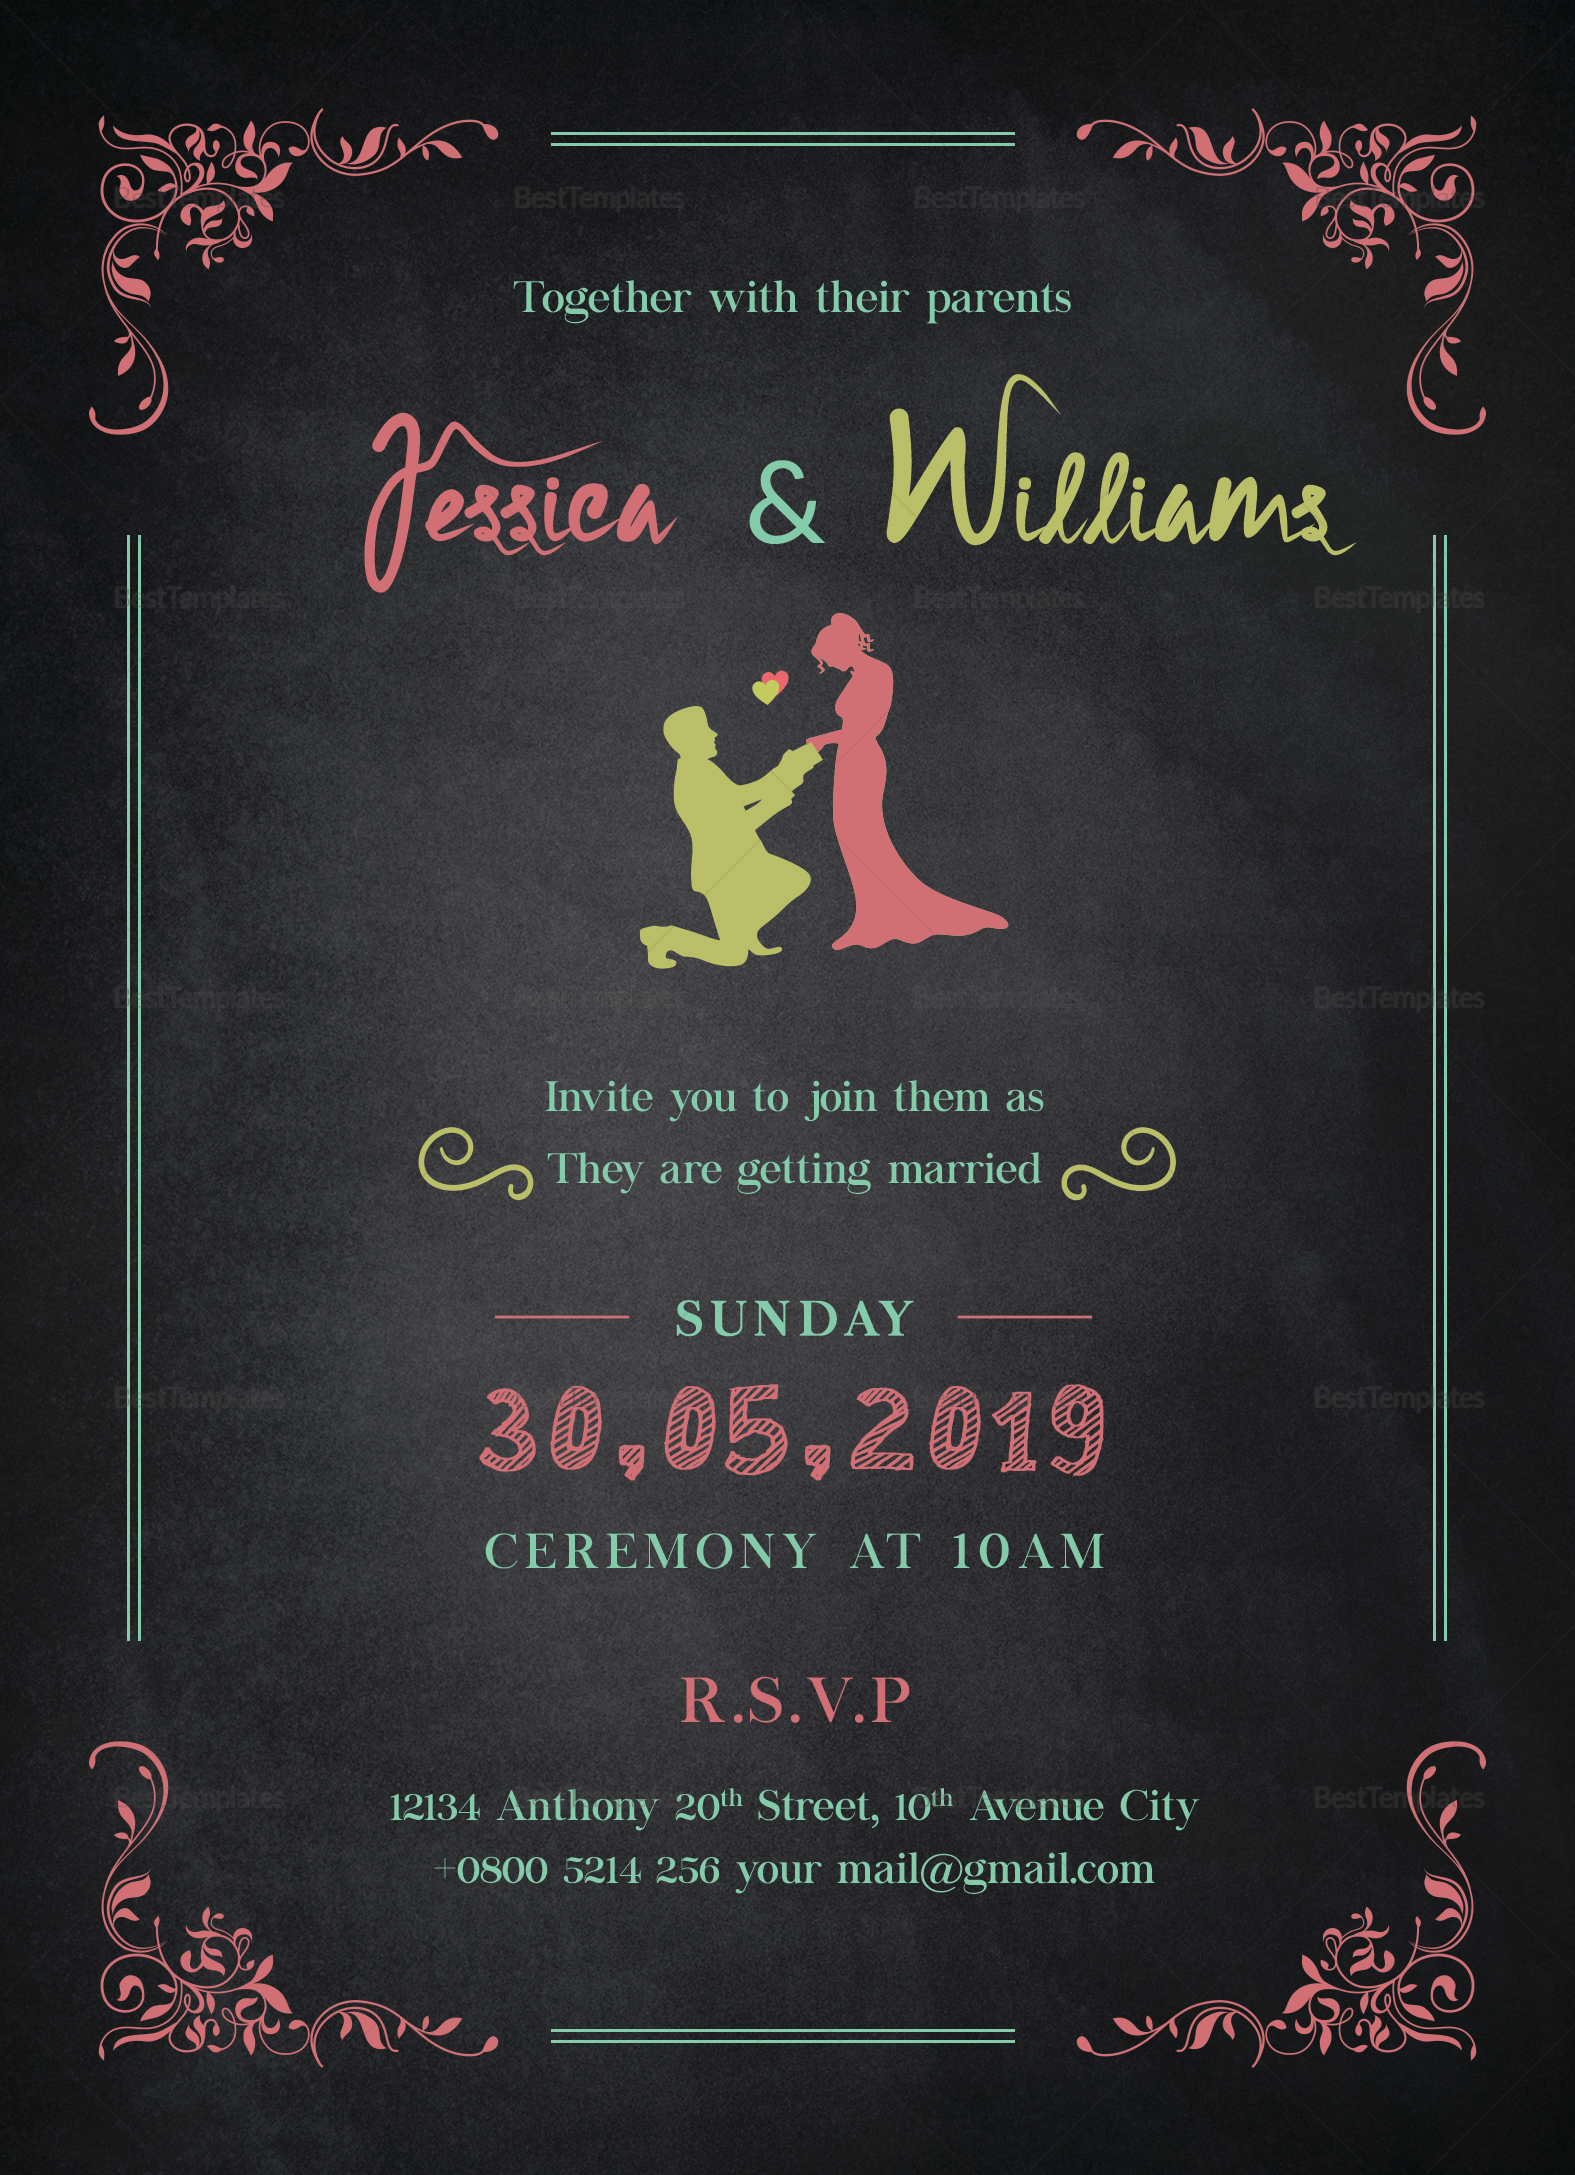 Chalkboard Wedding Invitation Design Template